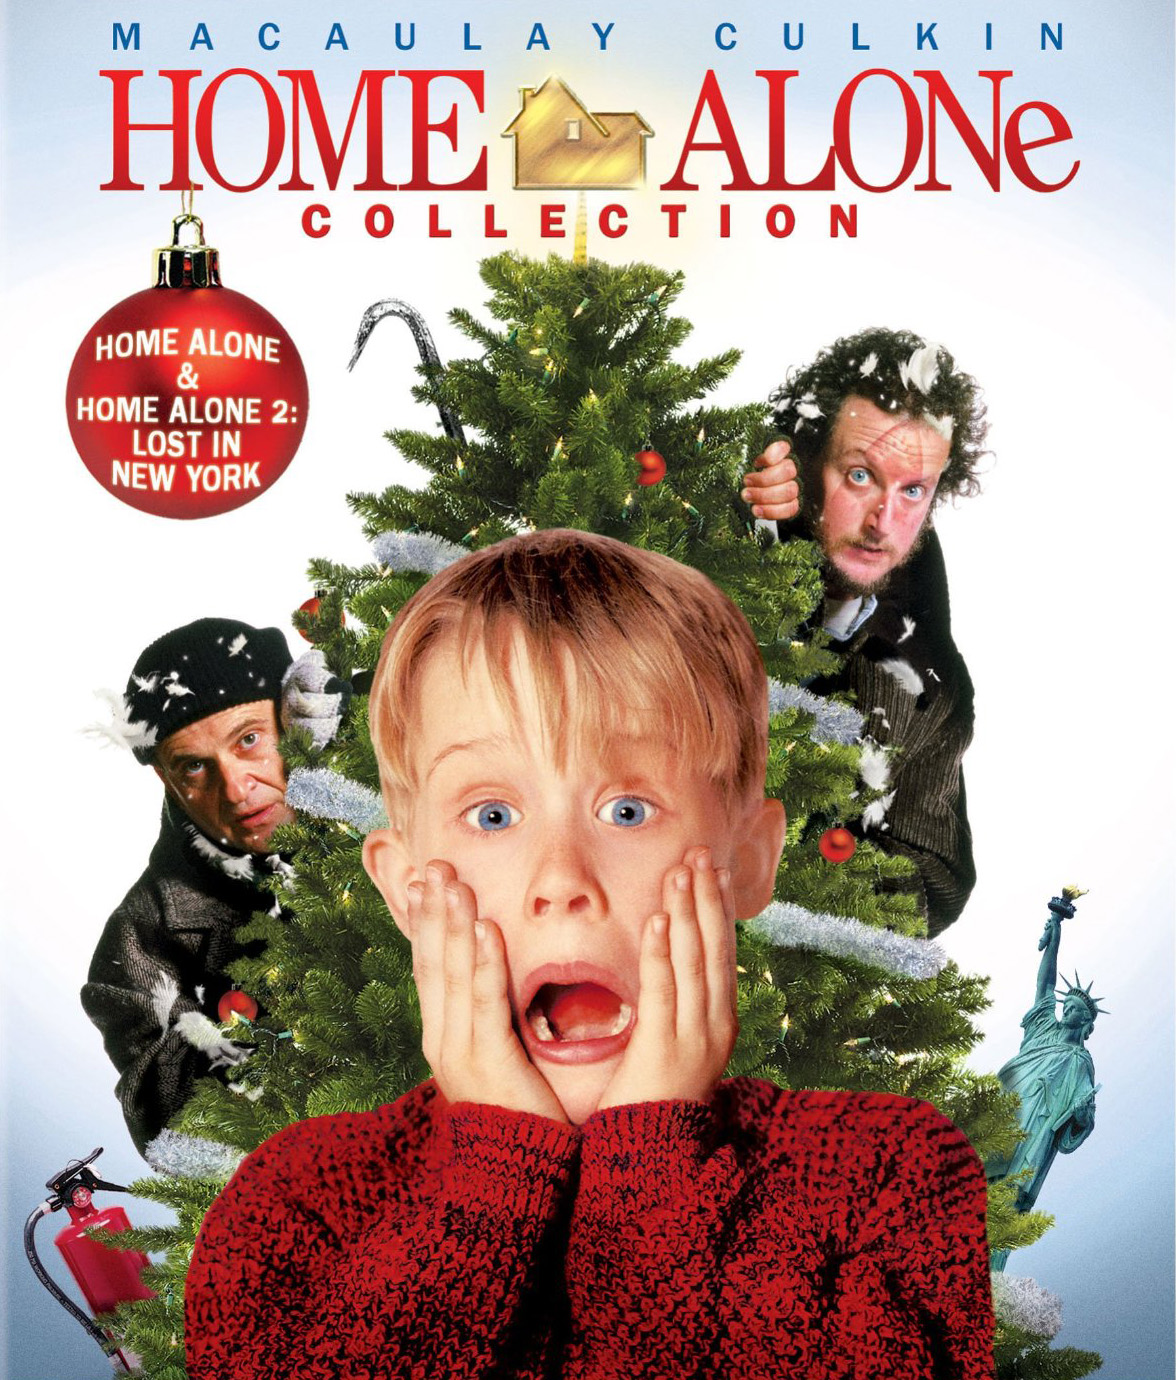 Сам удома / Один удома: Дилогія / Home Alone Dilogy (1990/1992) 2xUkr/Eng | Sub Eng